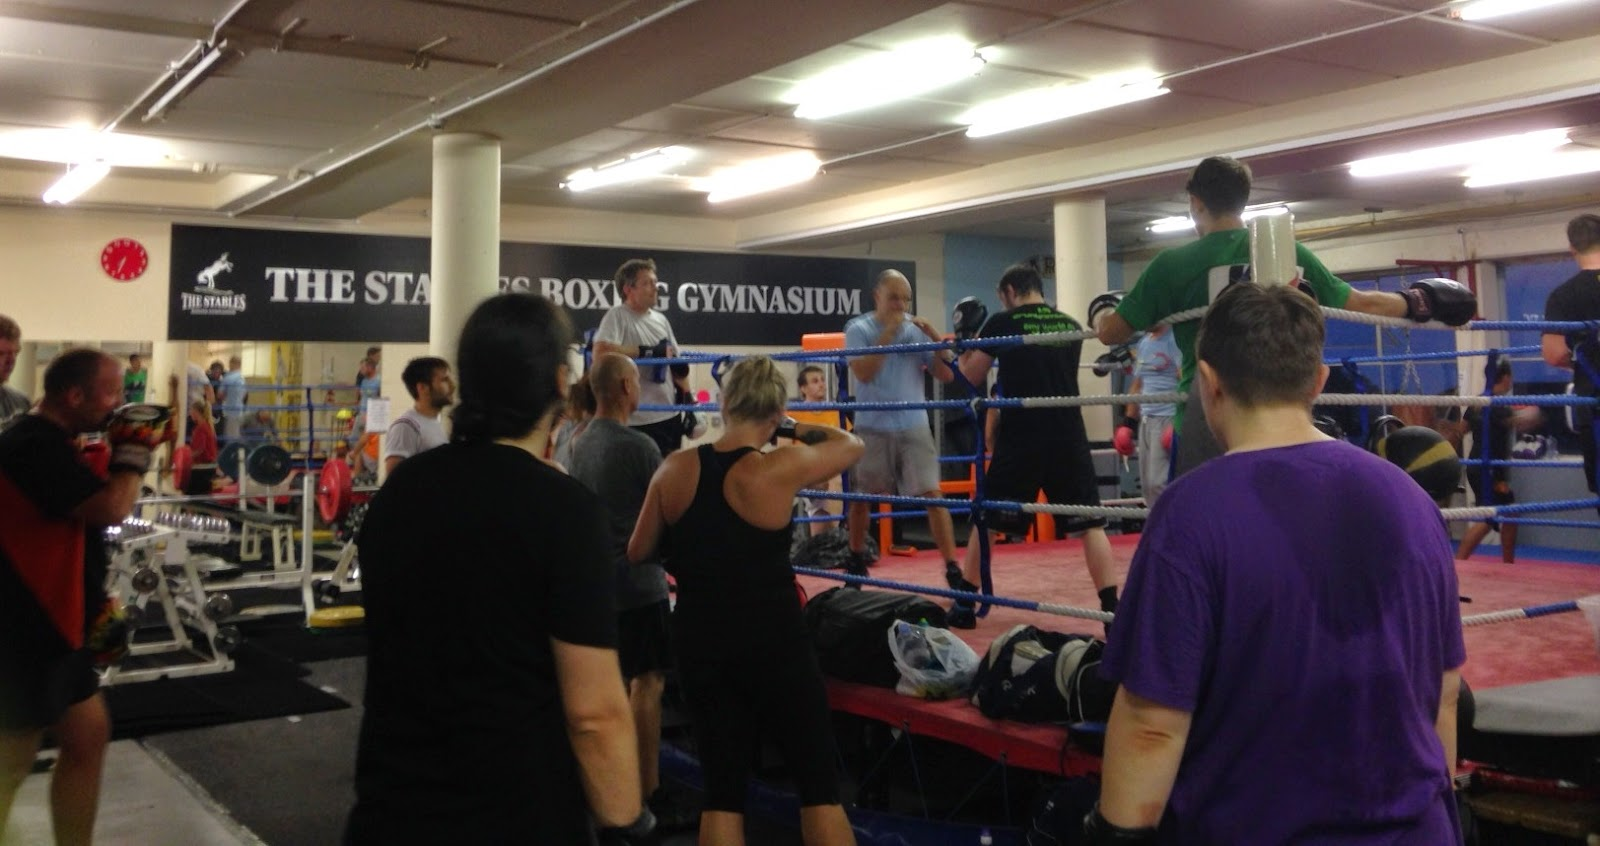 Stables Boxing Gym Brighton